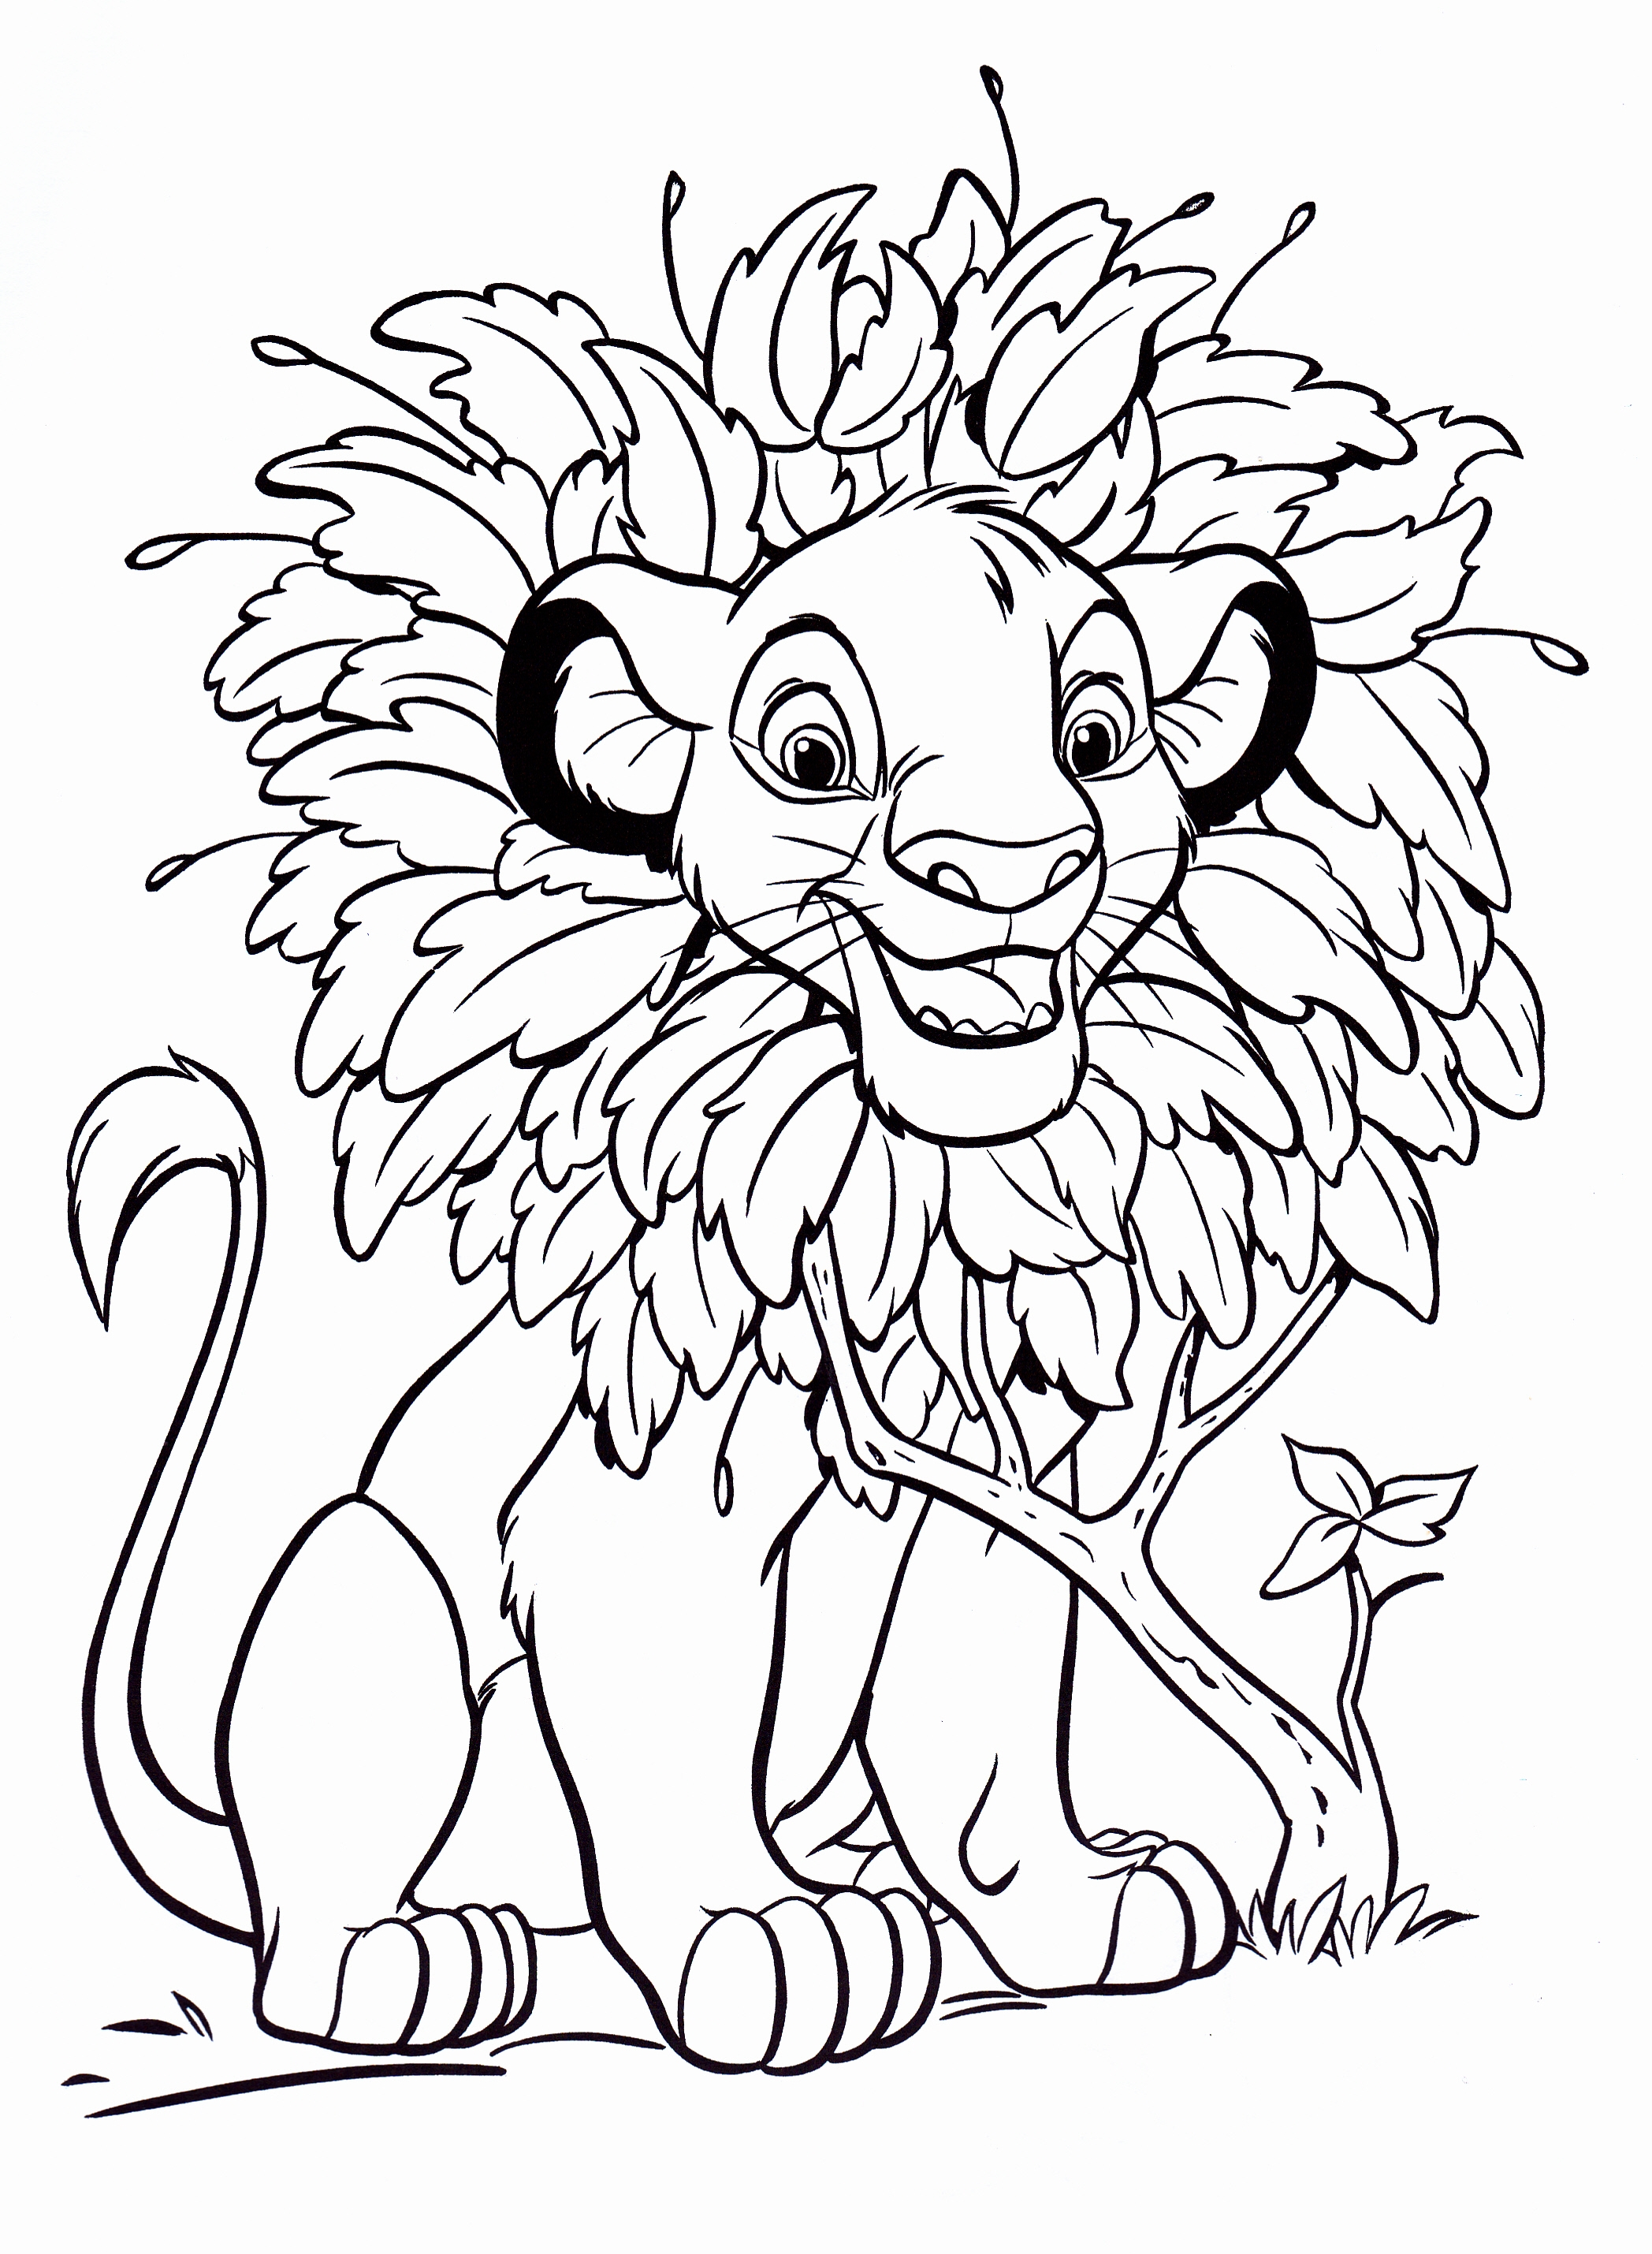 disney coloring pages - Disney Coloring Page